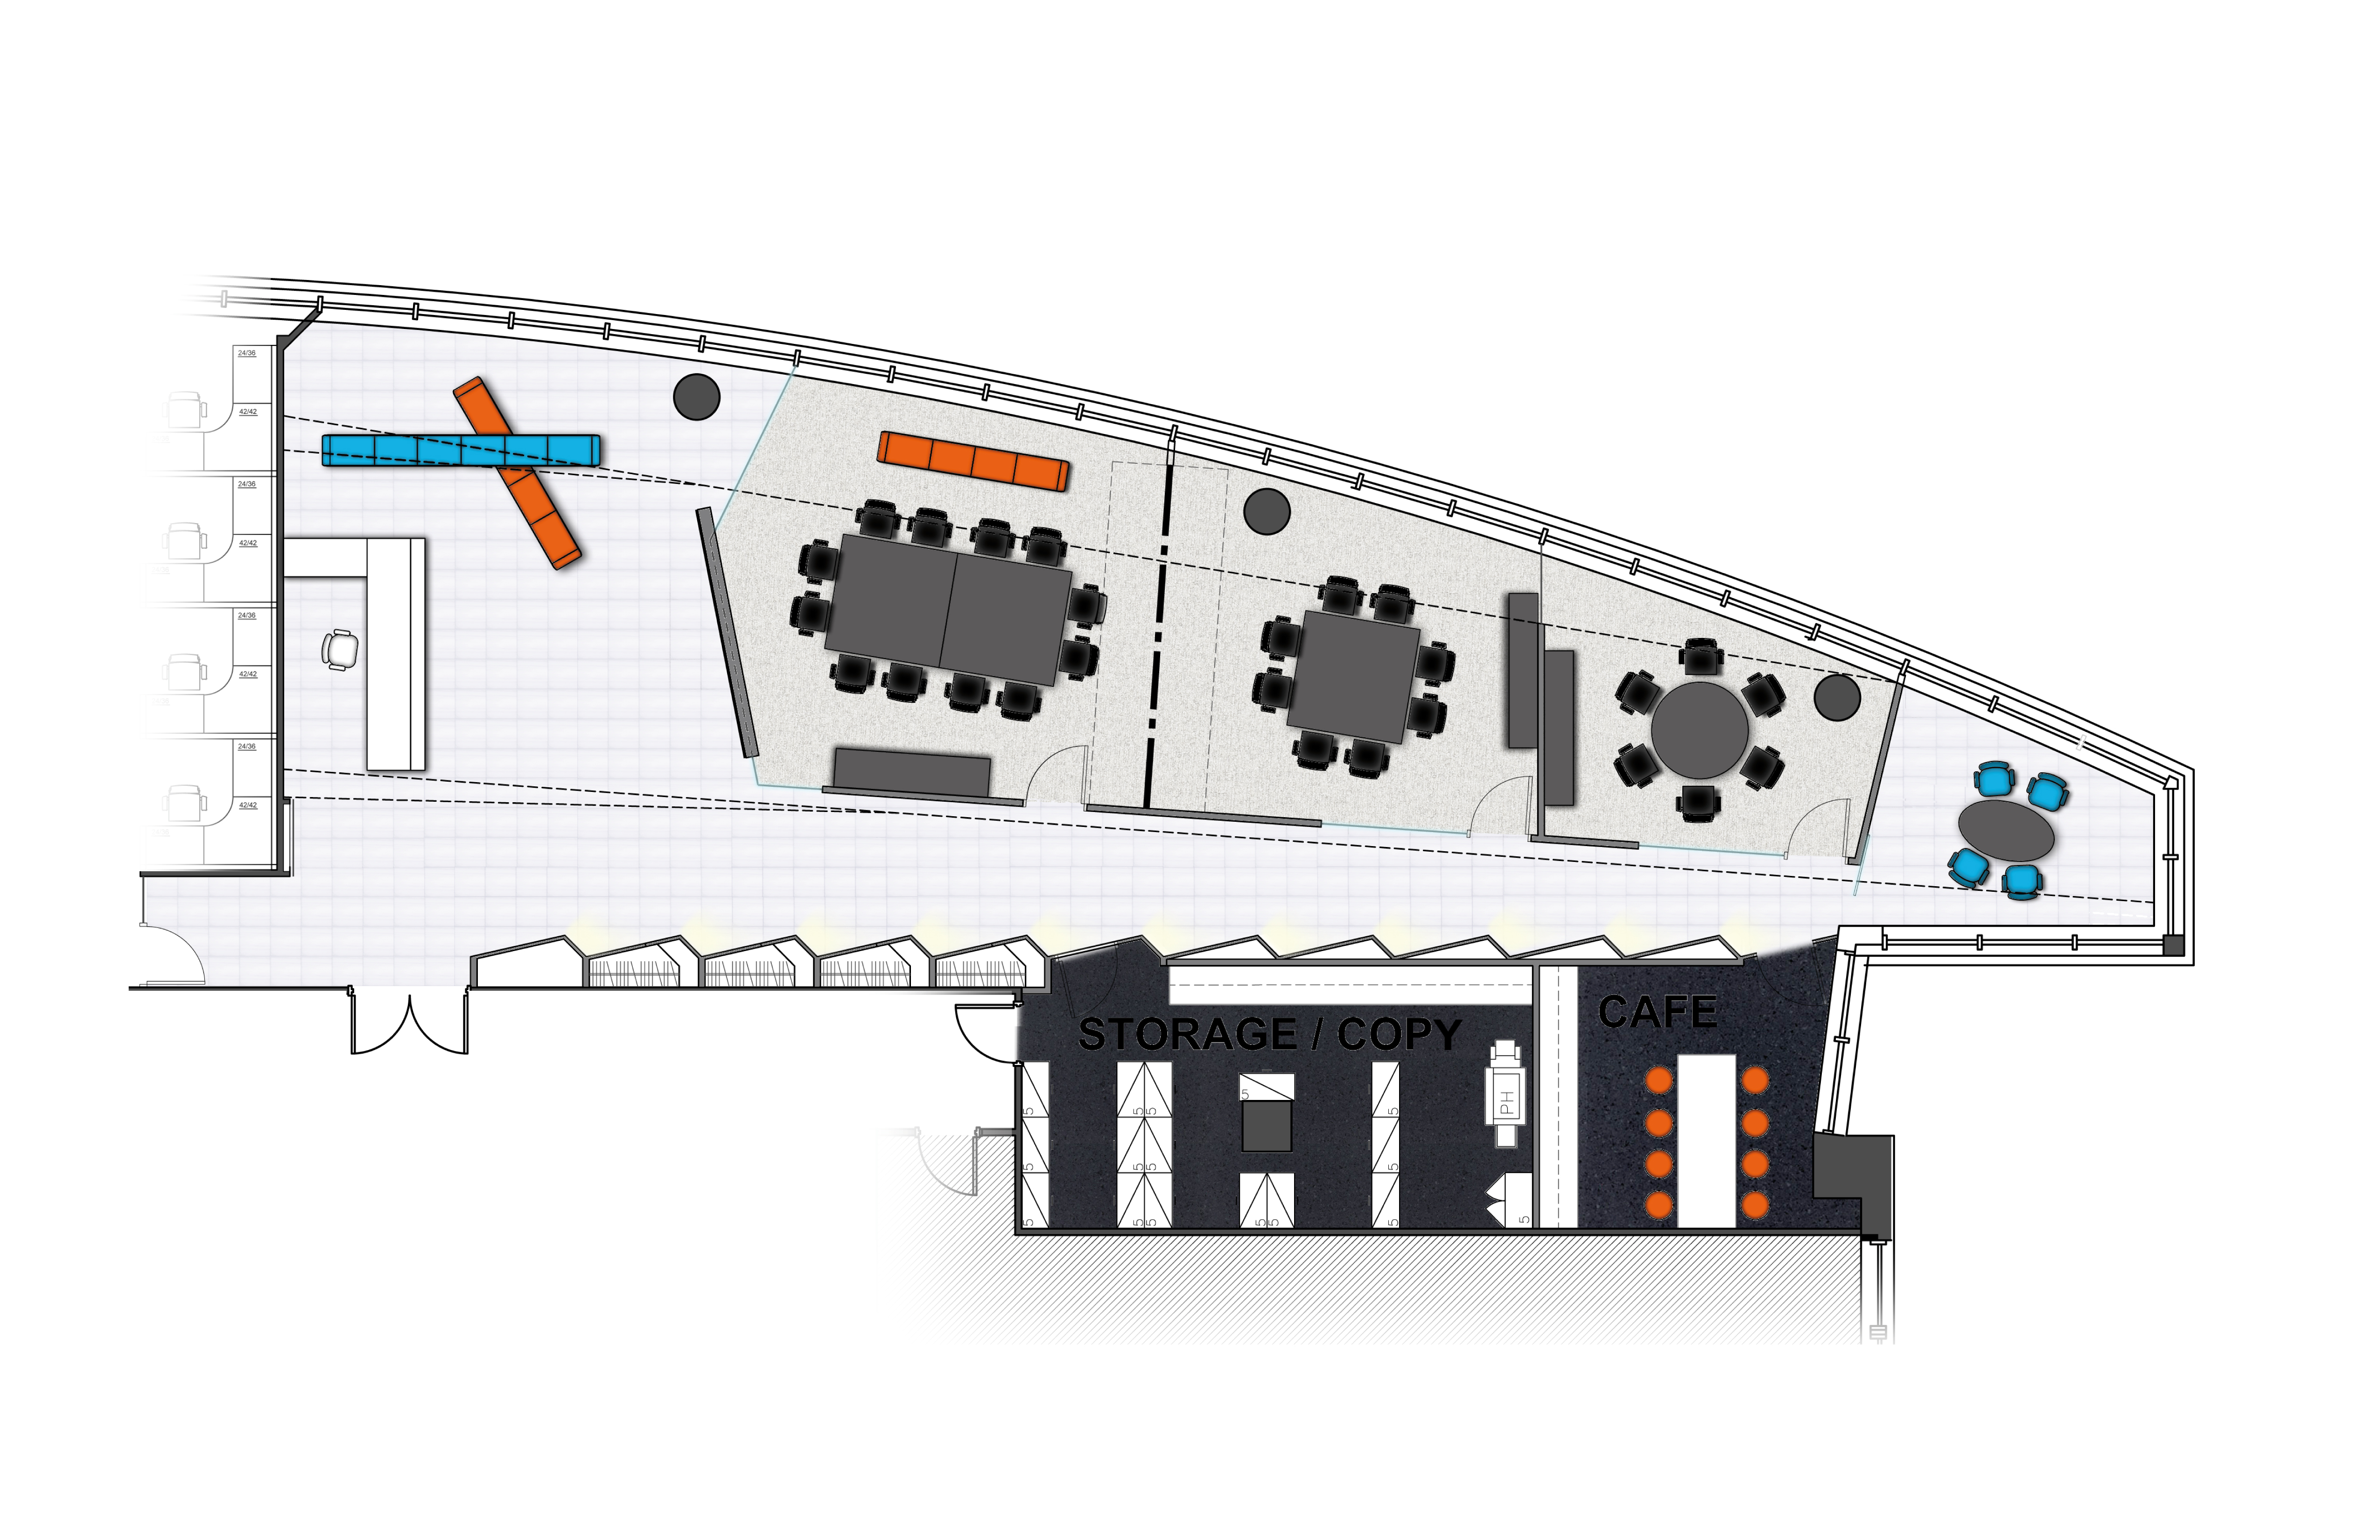 LEMAY_Pavilion_Categorie 12.1_Claude-Simon Langlois_Plan01